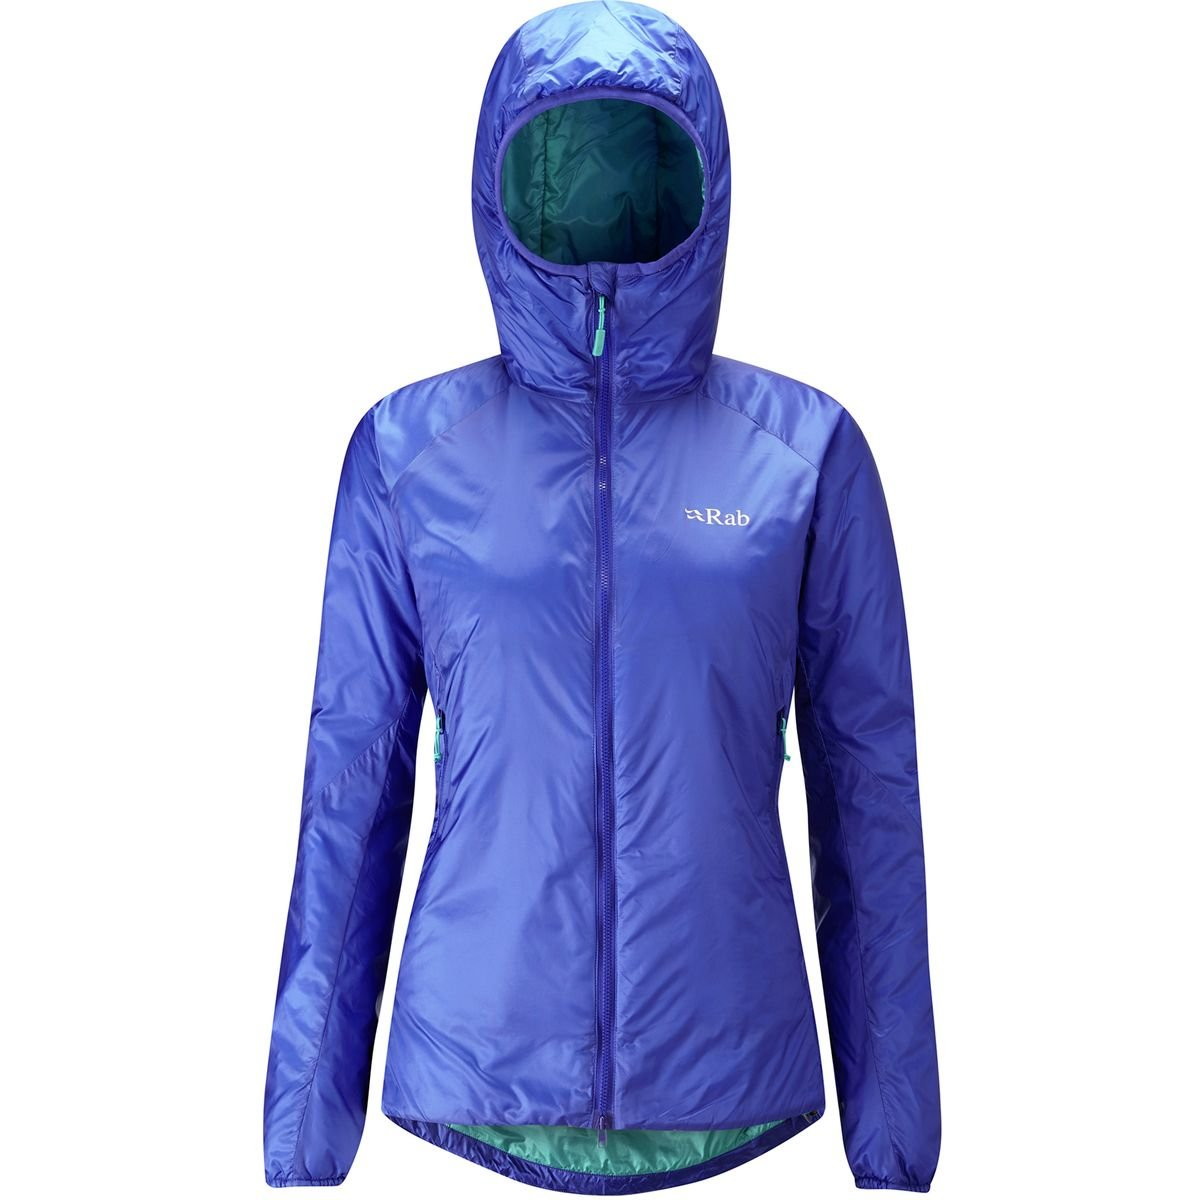 Rab Xenon X Insulated Hooded Jacket - Women's Electric/Seaglass, XL by RAB